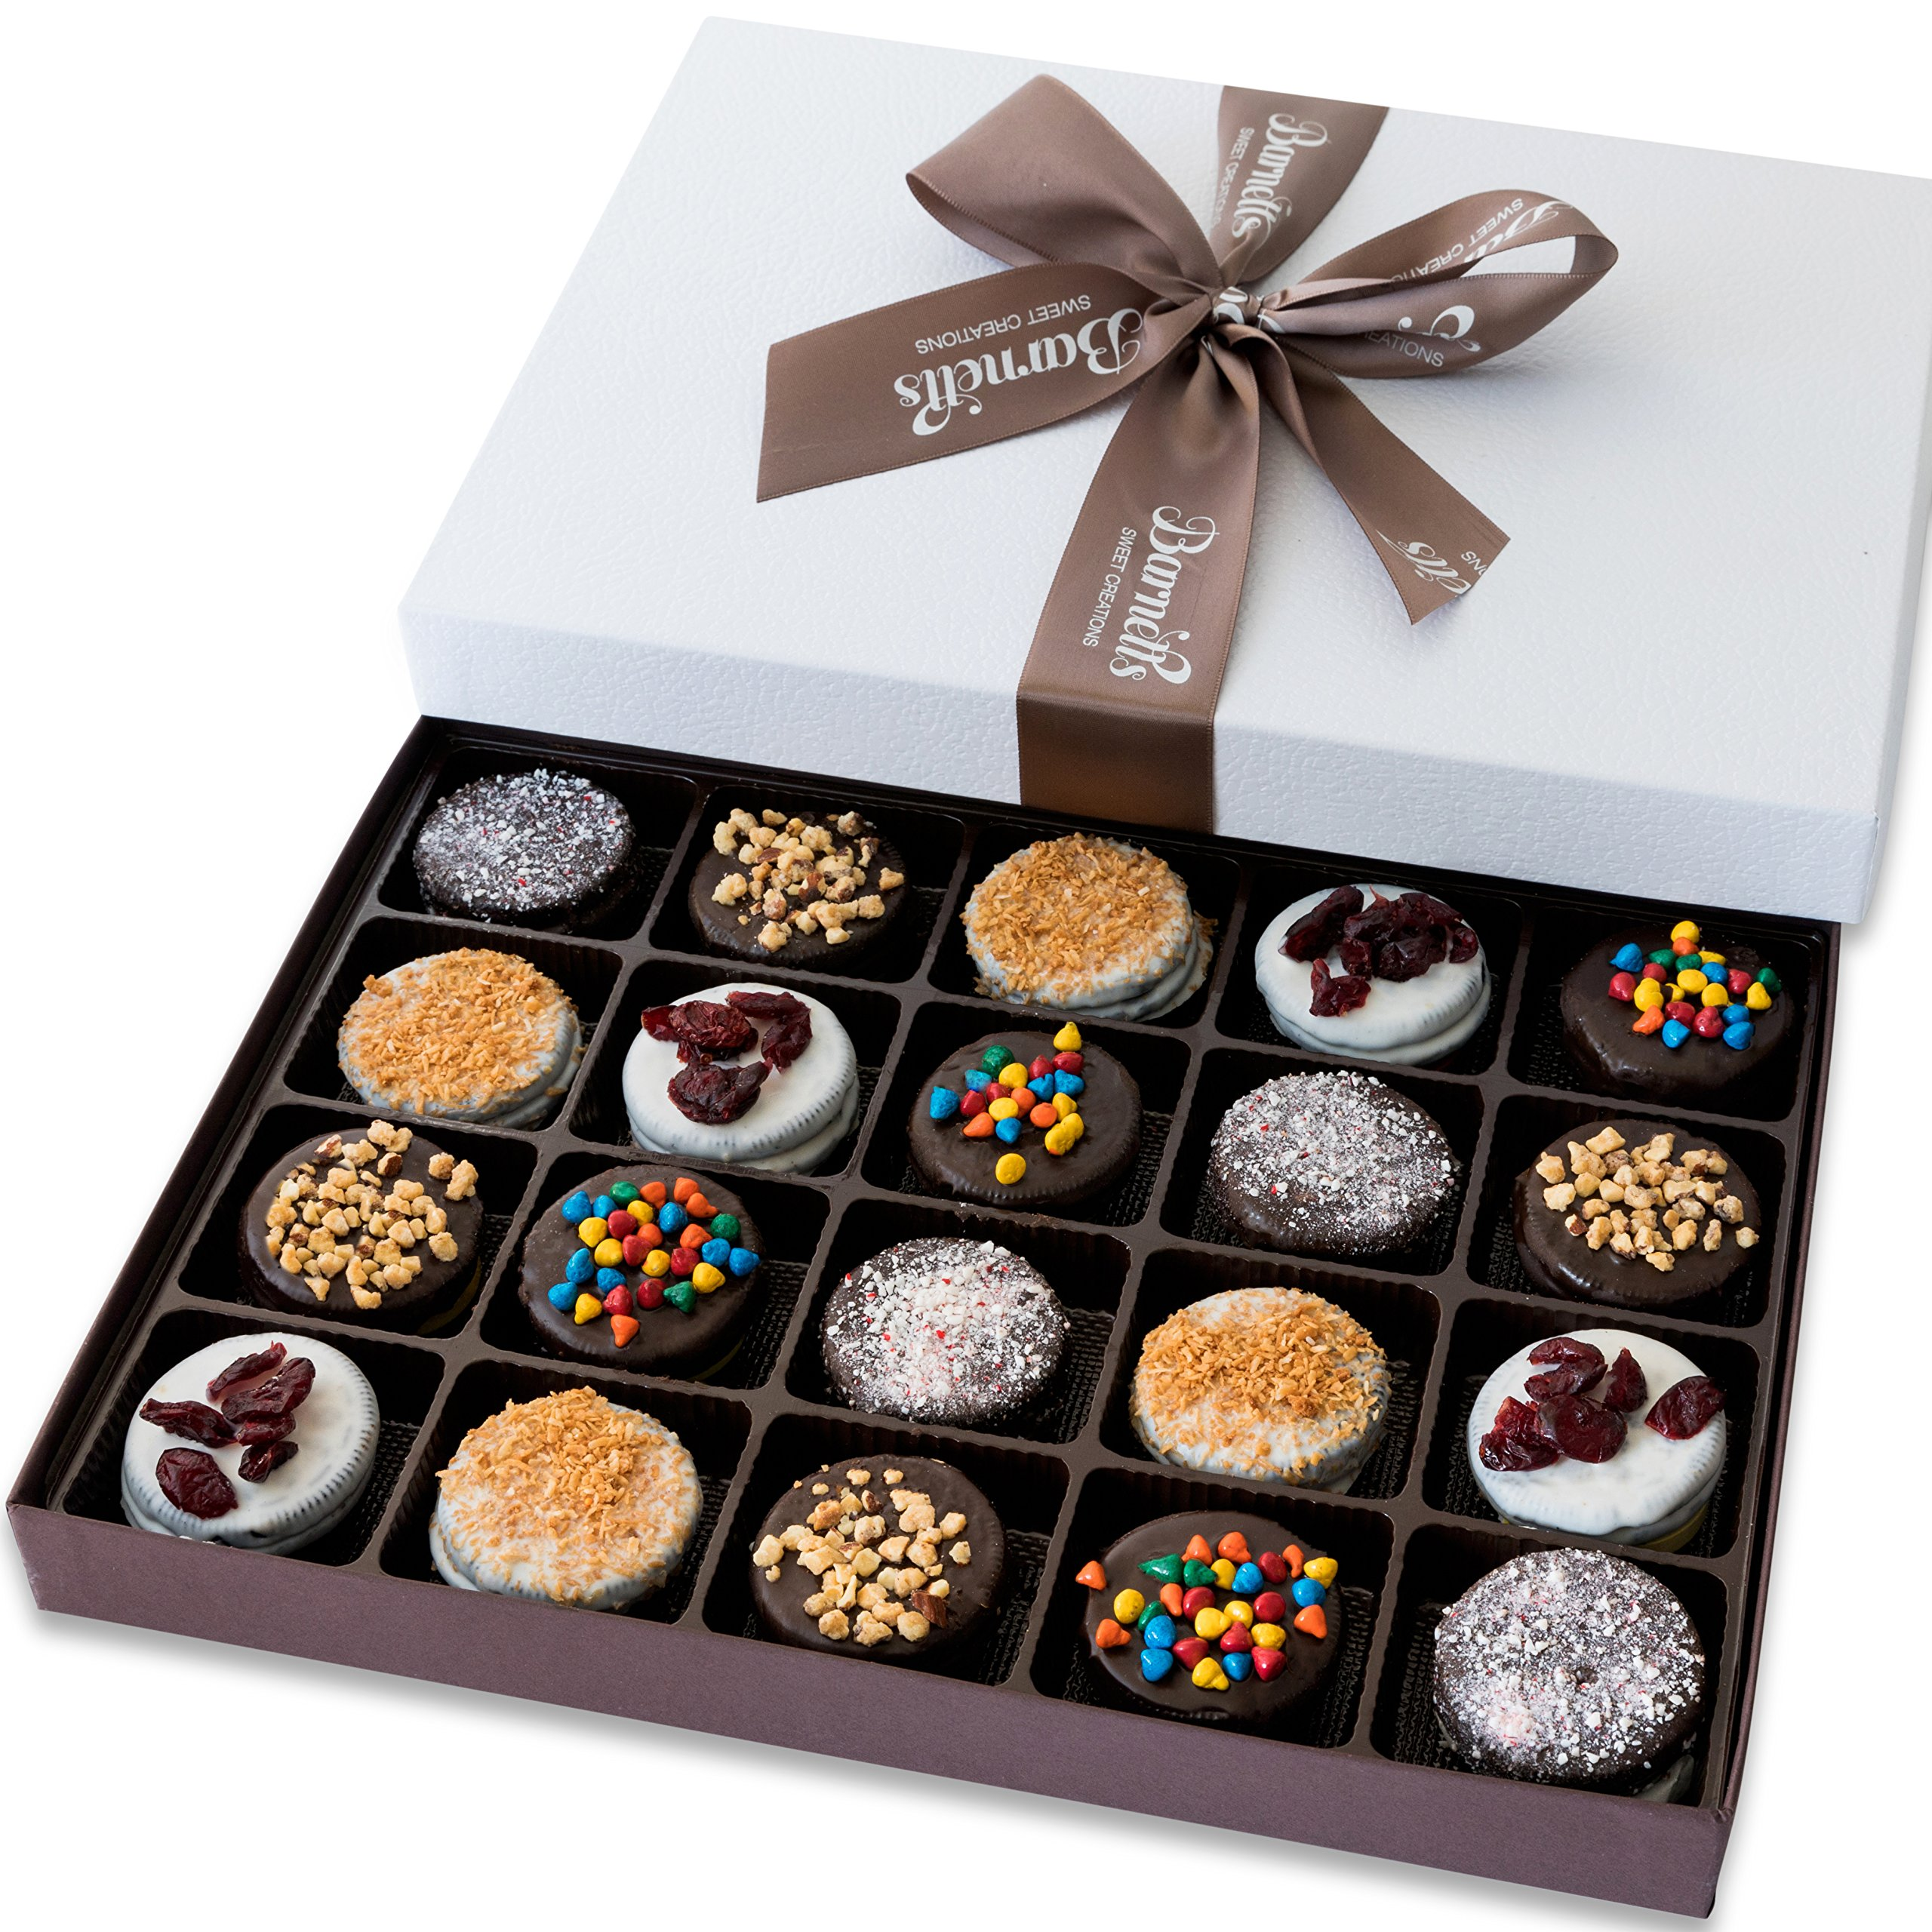 Barnett's Holiday Gift Basket - Elegant Chocolate Covered Sandwich Cookies Gift Box - Unique Gourmet Food Gifts Idea For Men, Women, Birthday, Corporate, Mothers Day or Valentines Baskets for Her by Barnetts Fine Biscotti